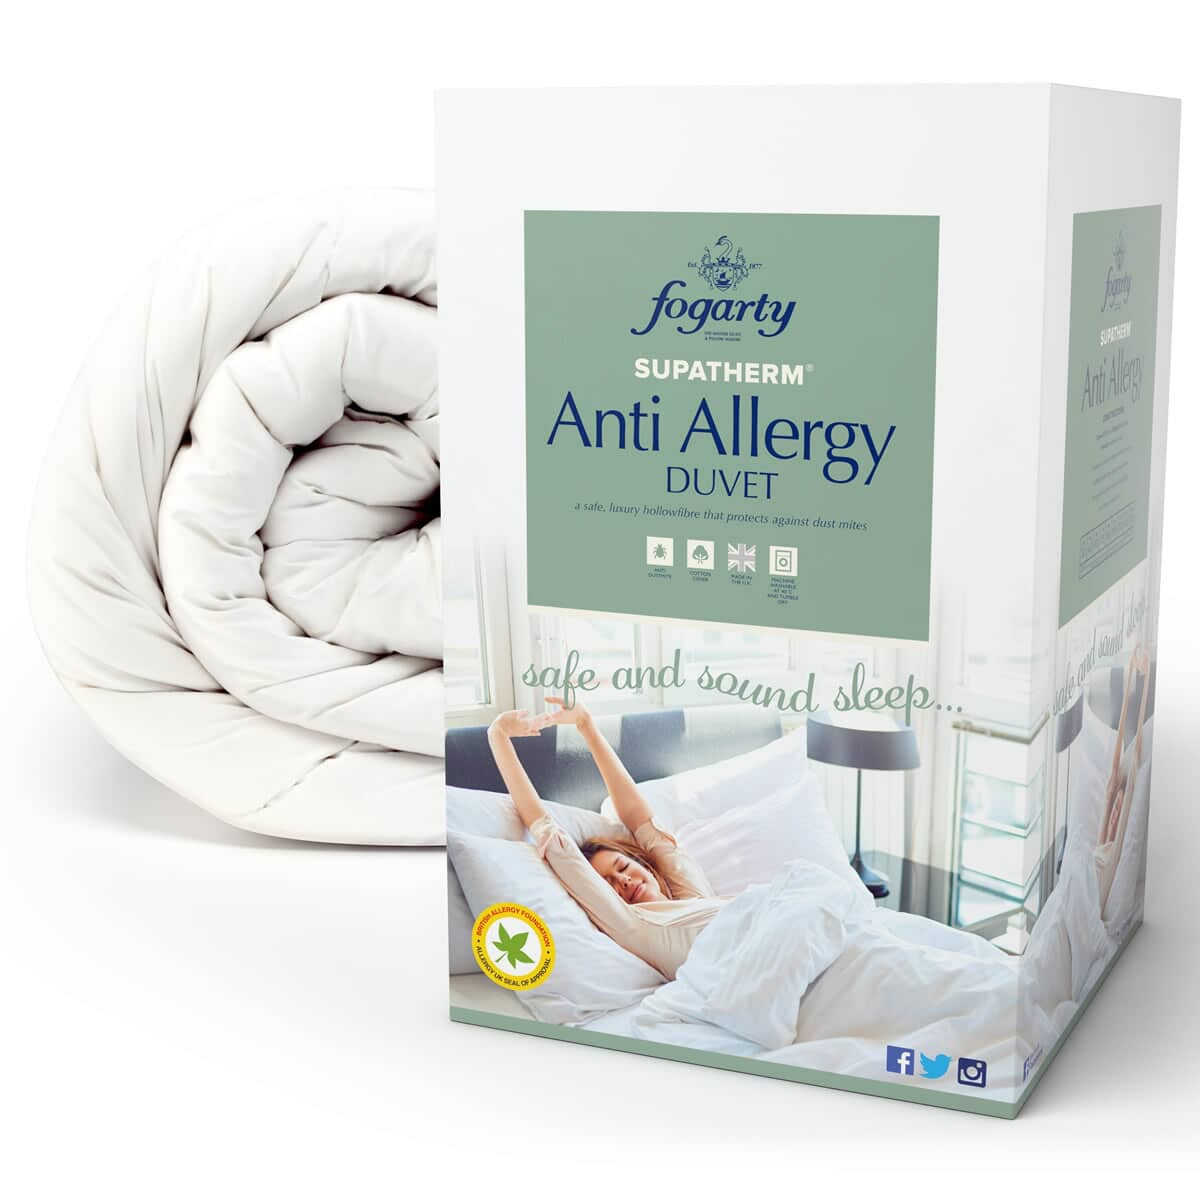 fogarty supatherm anti allergy justlinen. Black Bedroom Furniture Sets. Home Design Ideas